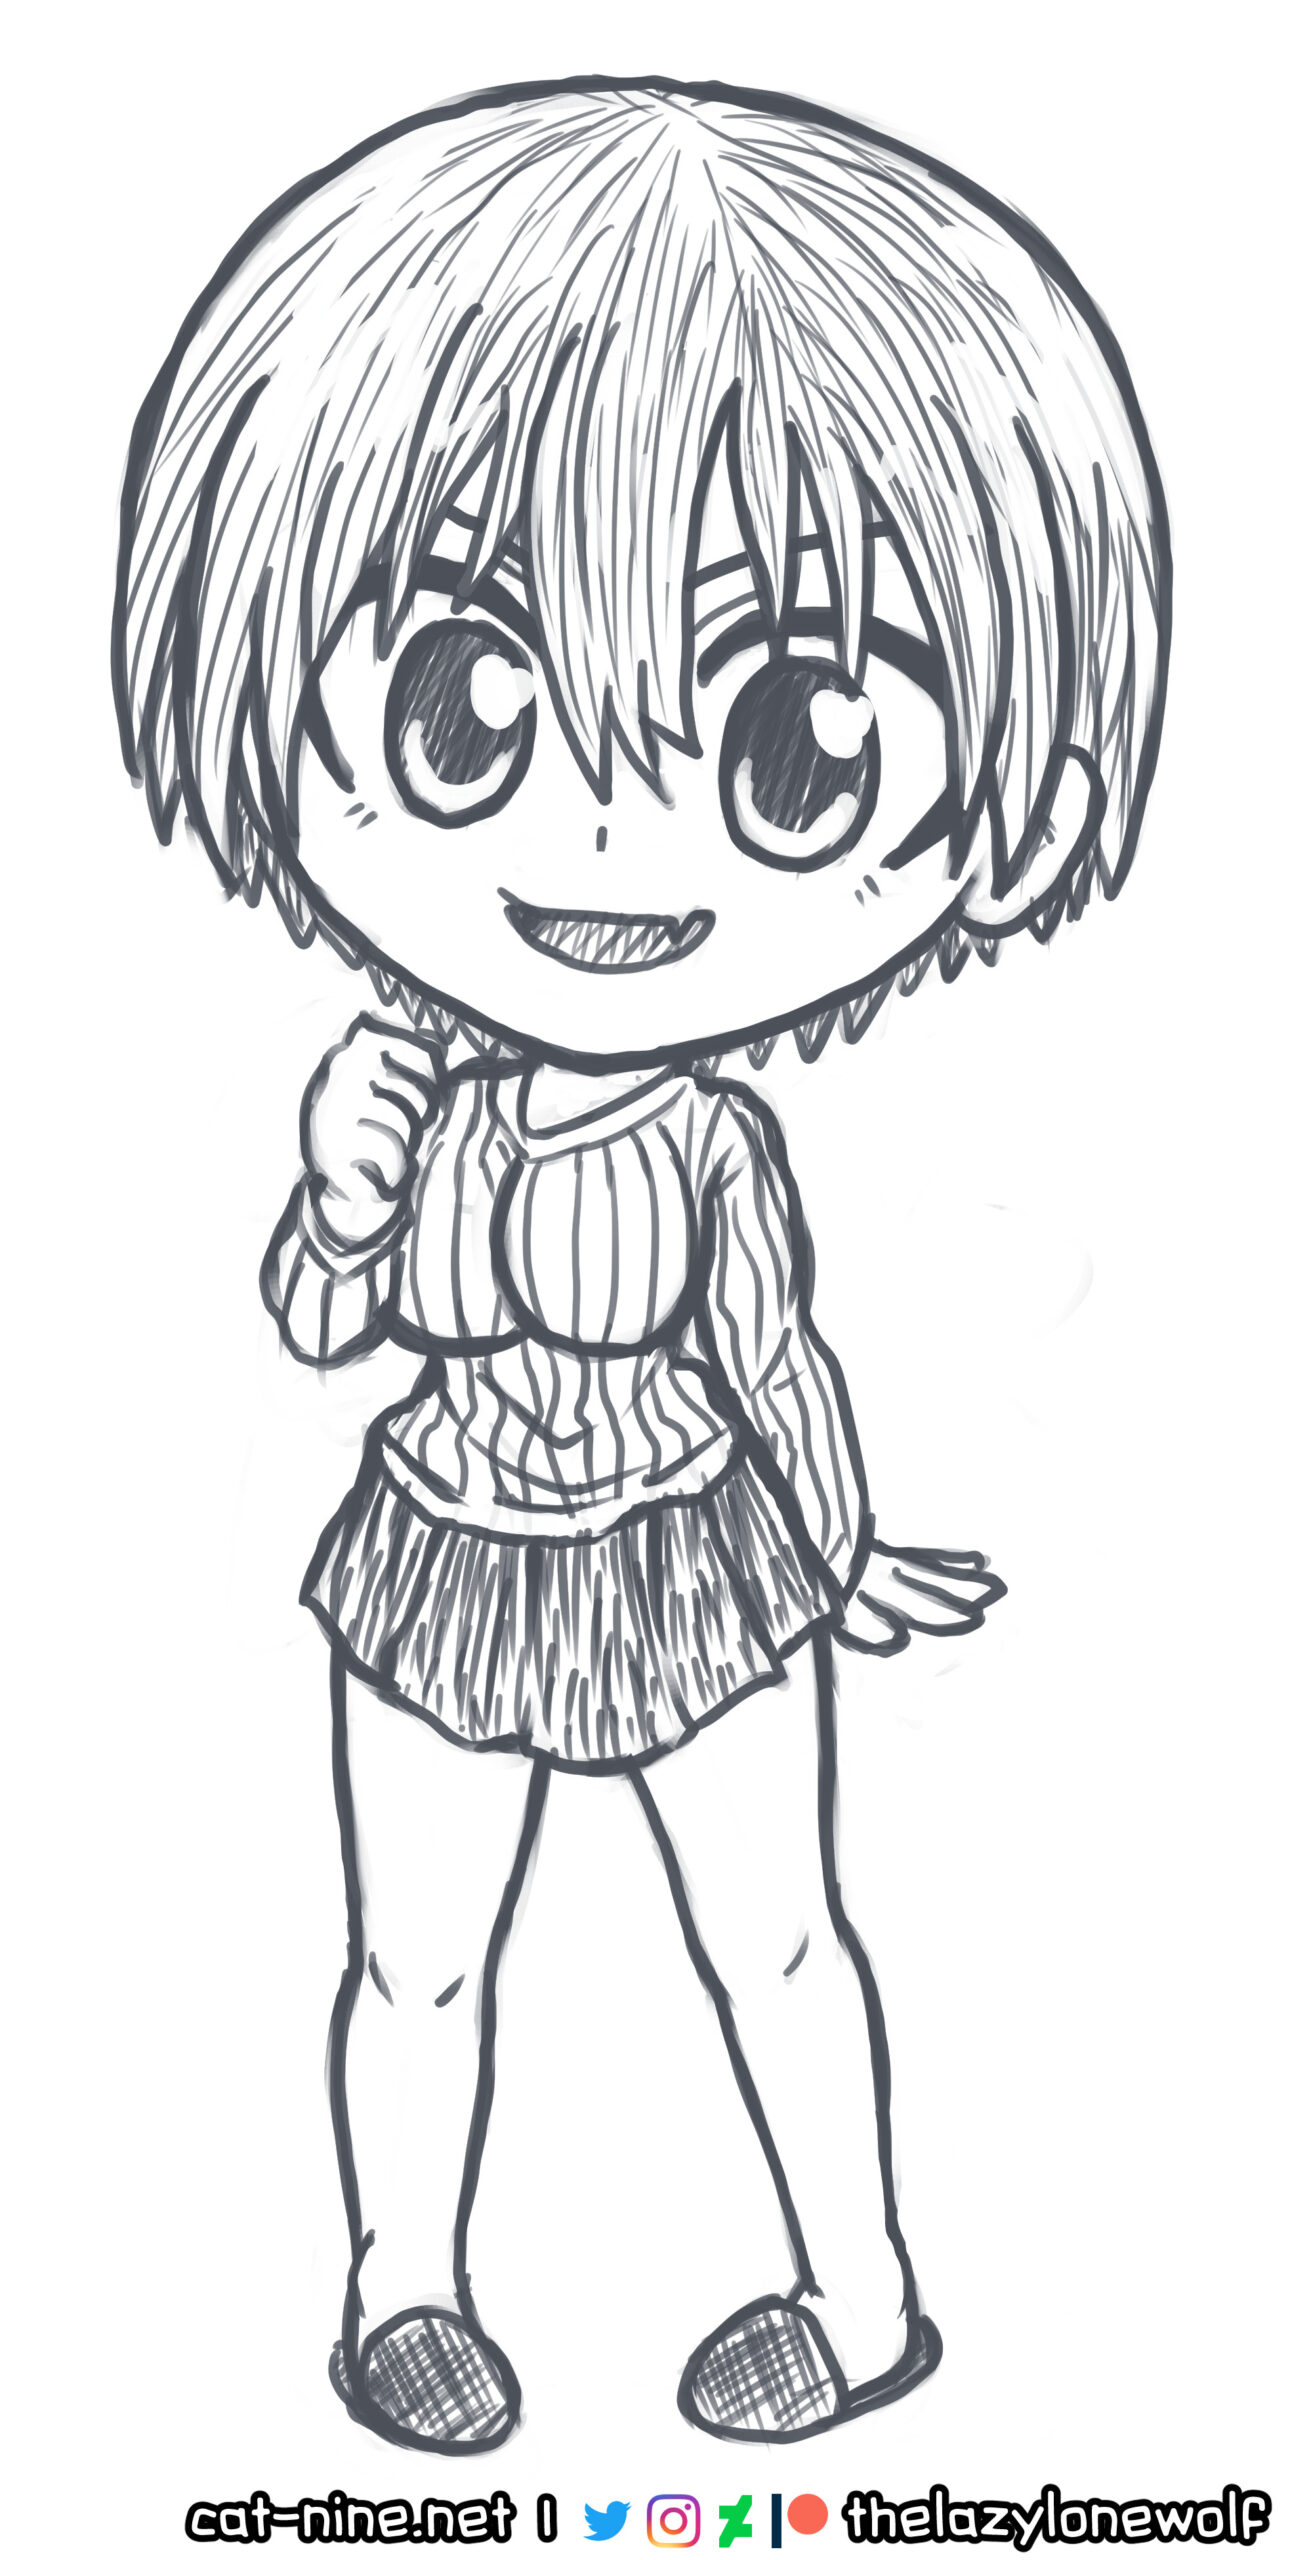 Chibi fan art of Uzaki from Uzaki-chan Wants to Hang Out!/宇崎ちゃんは遊びたい!